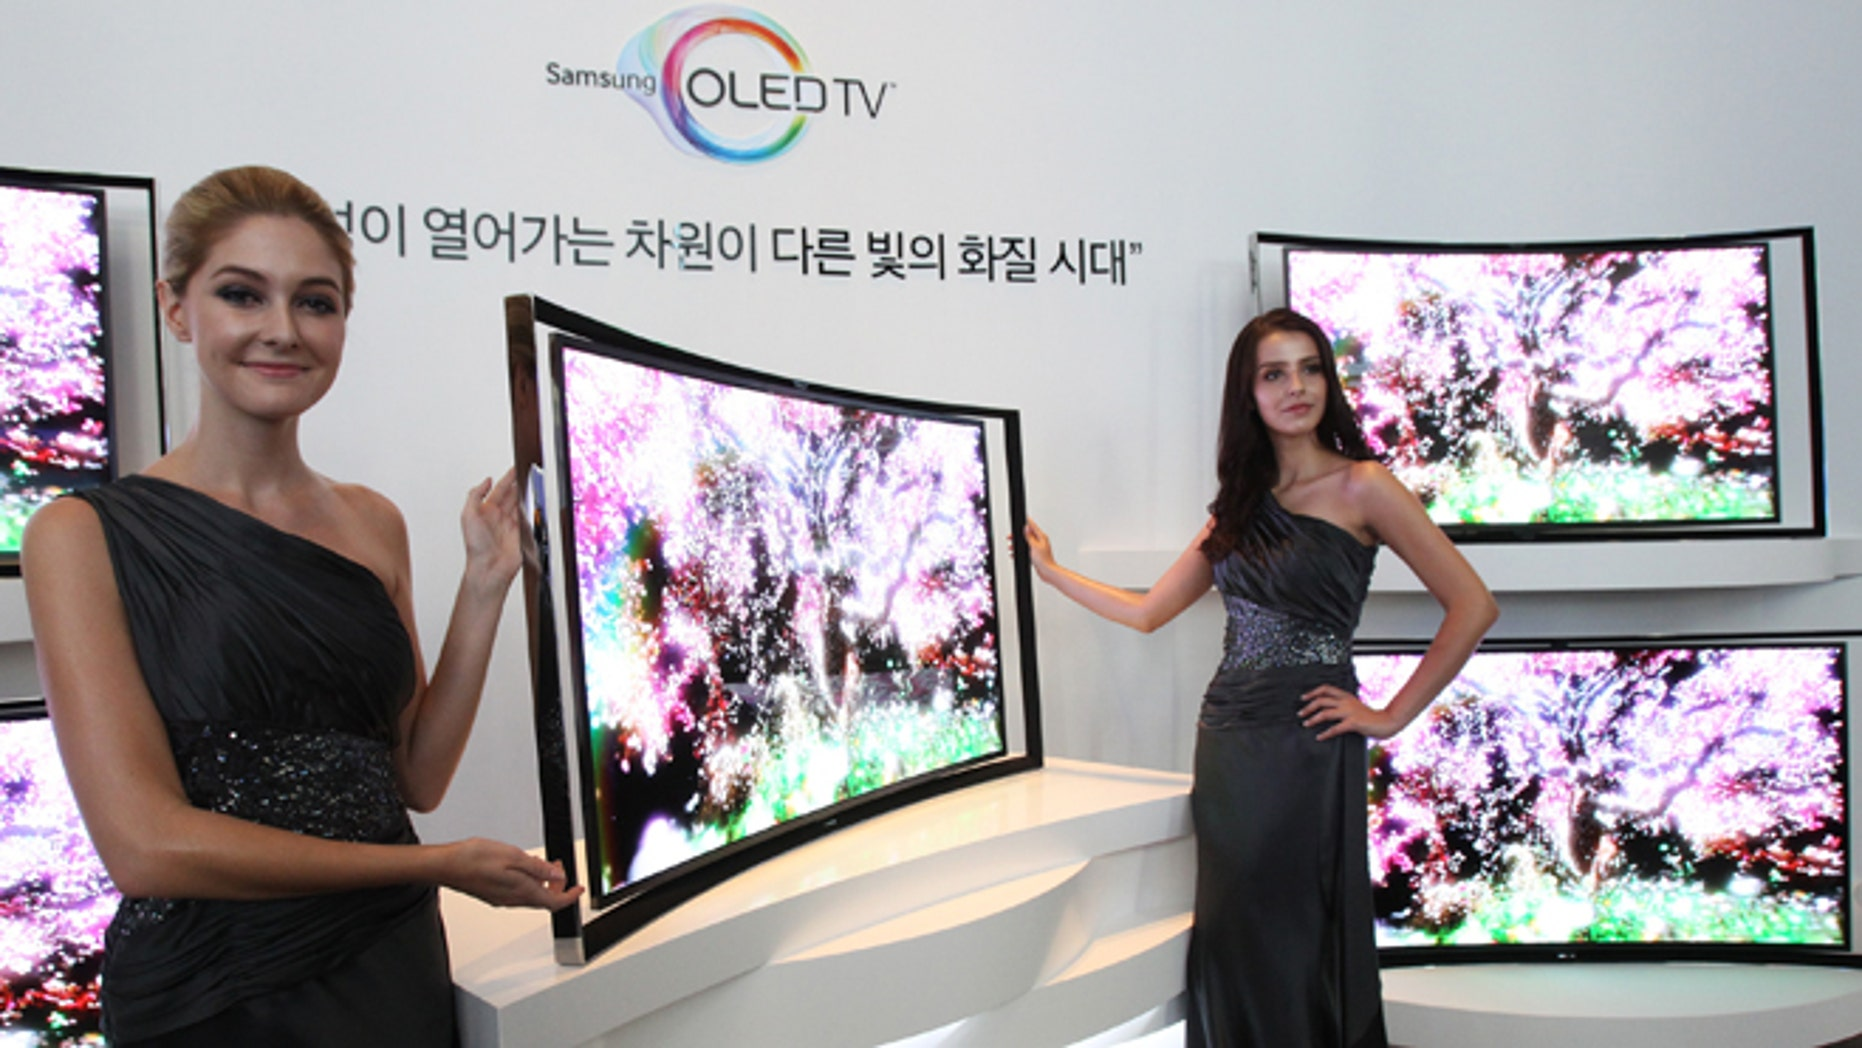 Models pose with a Samsung Electronics Co.'s 55-inch curved OLED TV during a press conference at its headquarters in Seoul, South Korea, Thursday, June 27, 2013. (AP Photo/Ahn Young-joon)